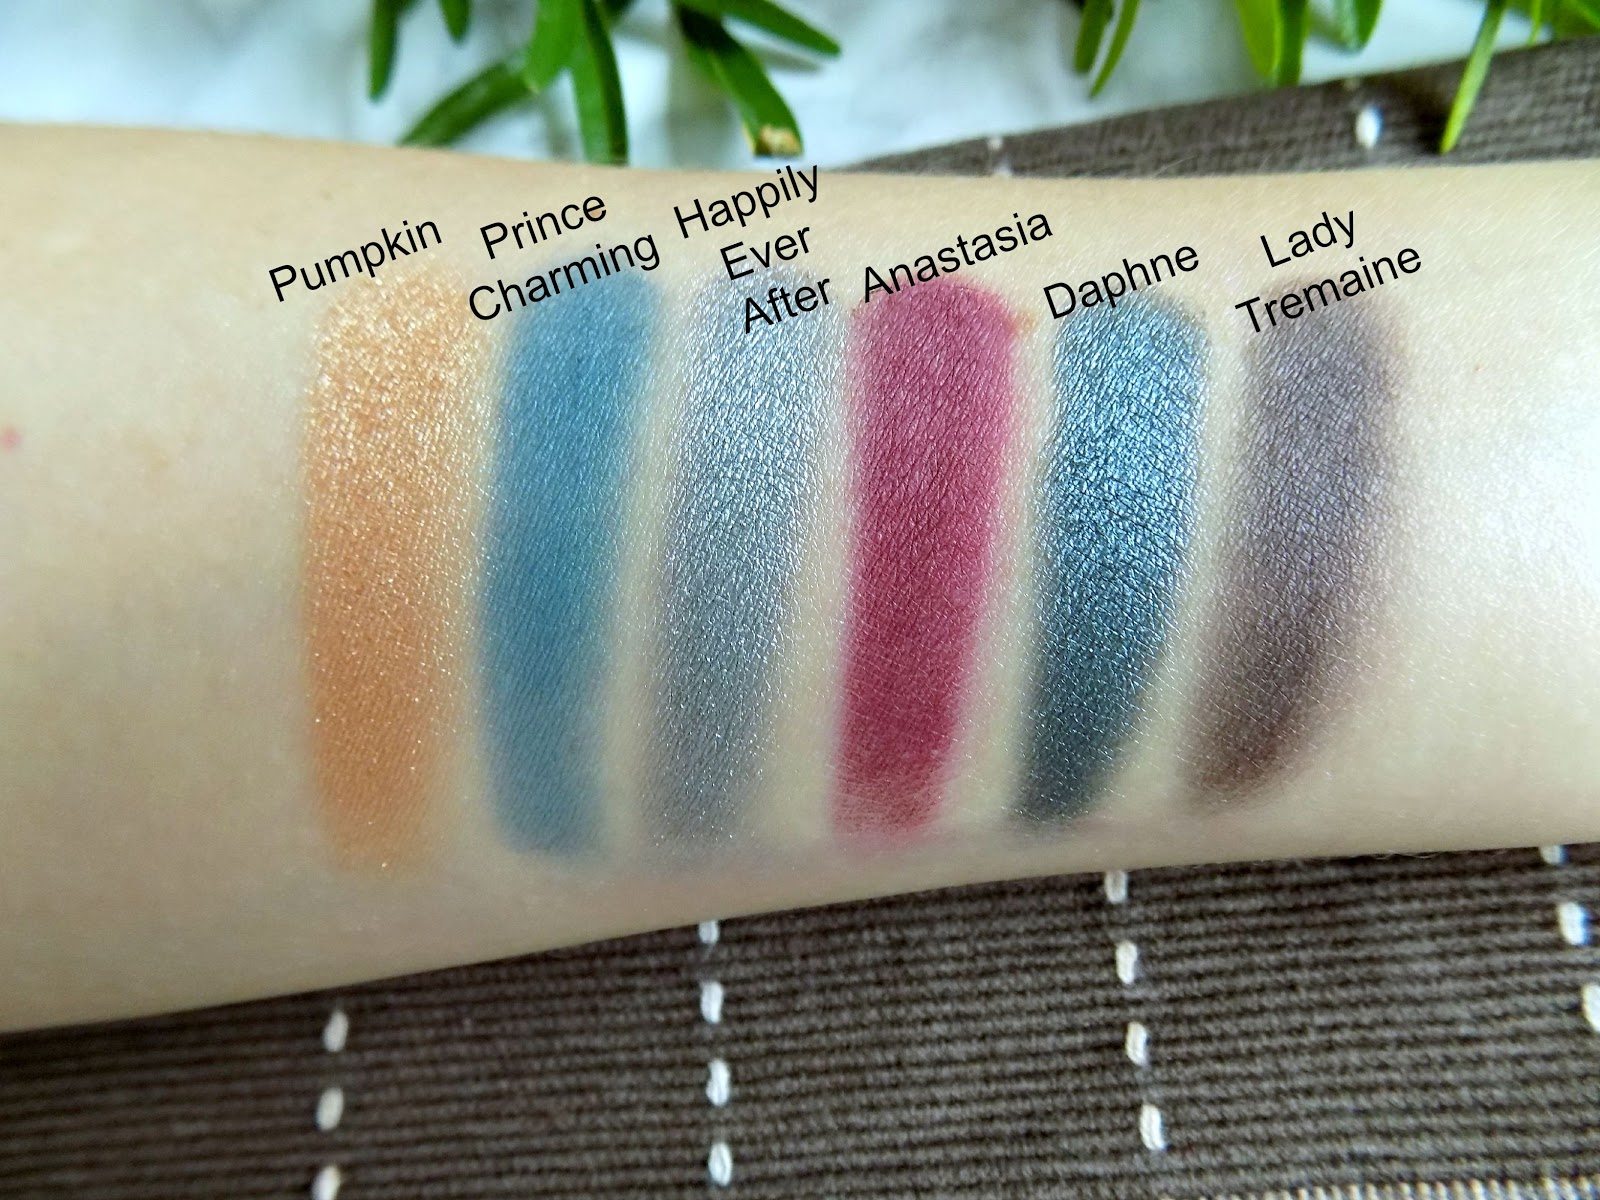 Sleek Enchanted Forest palette - review and swatches | Mummy's ...